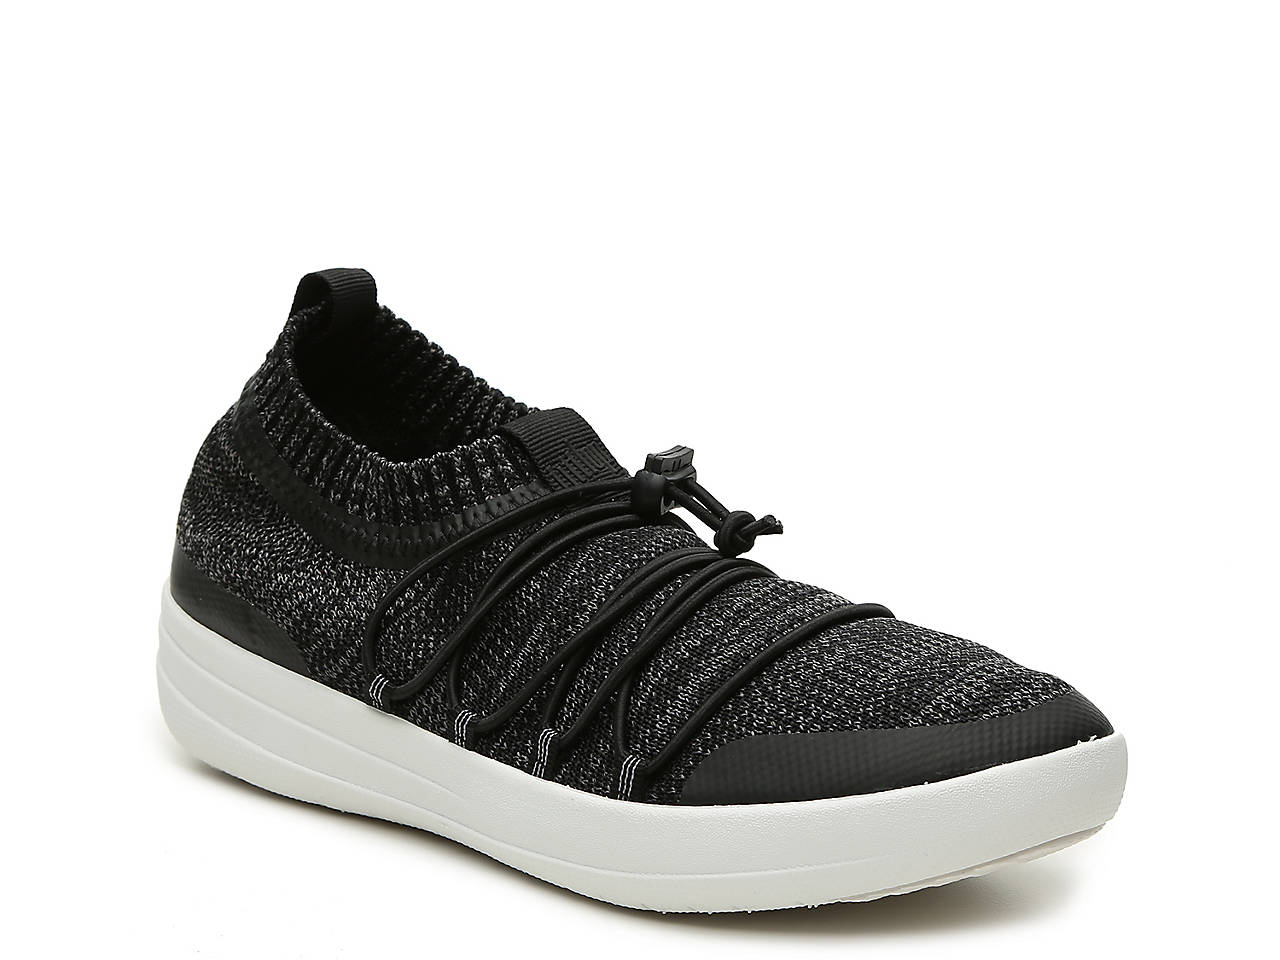 038390690 FitFlop Uberknit Ghillie Slip-On Sneaker Women s Shoes